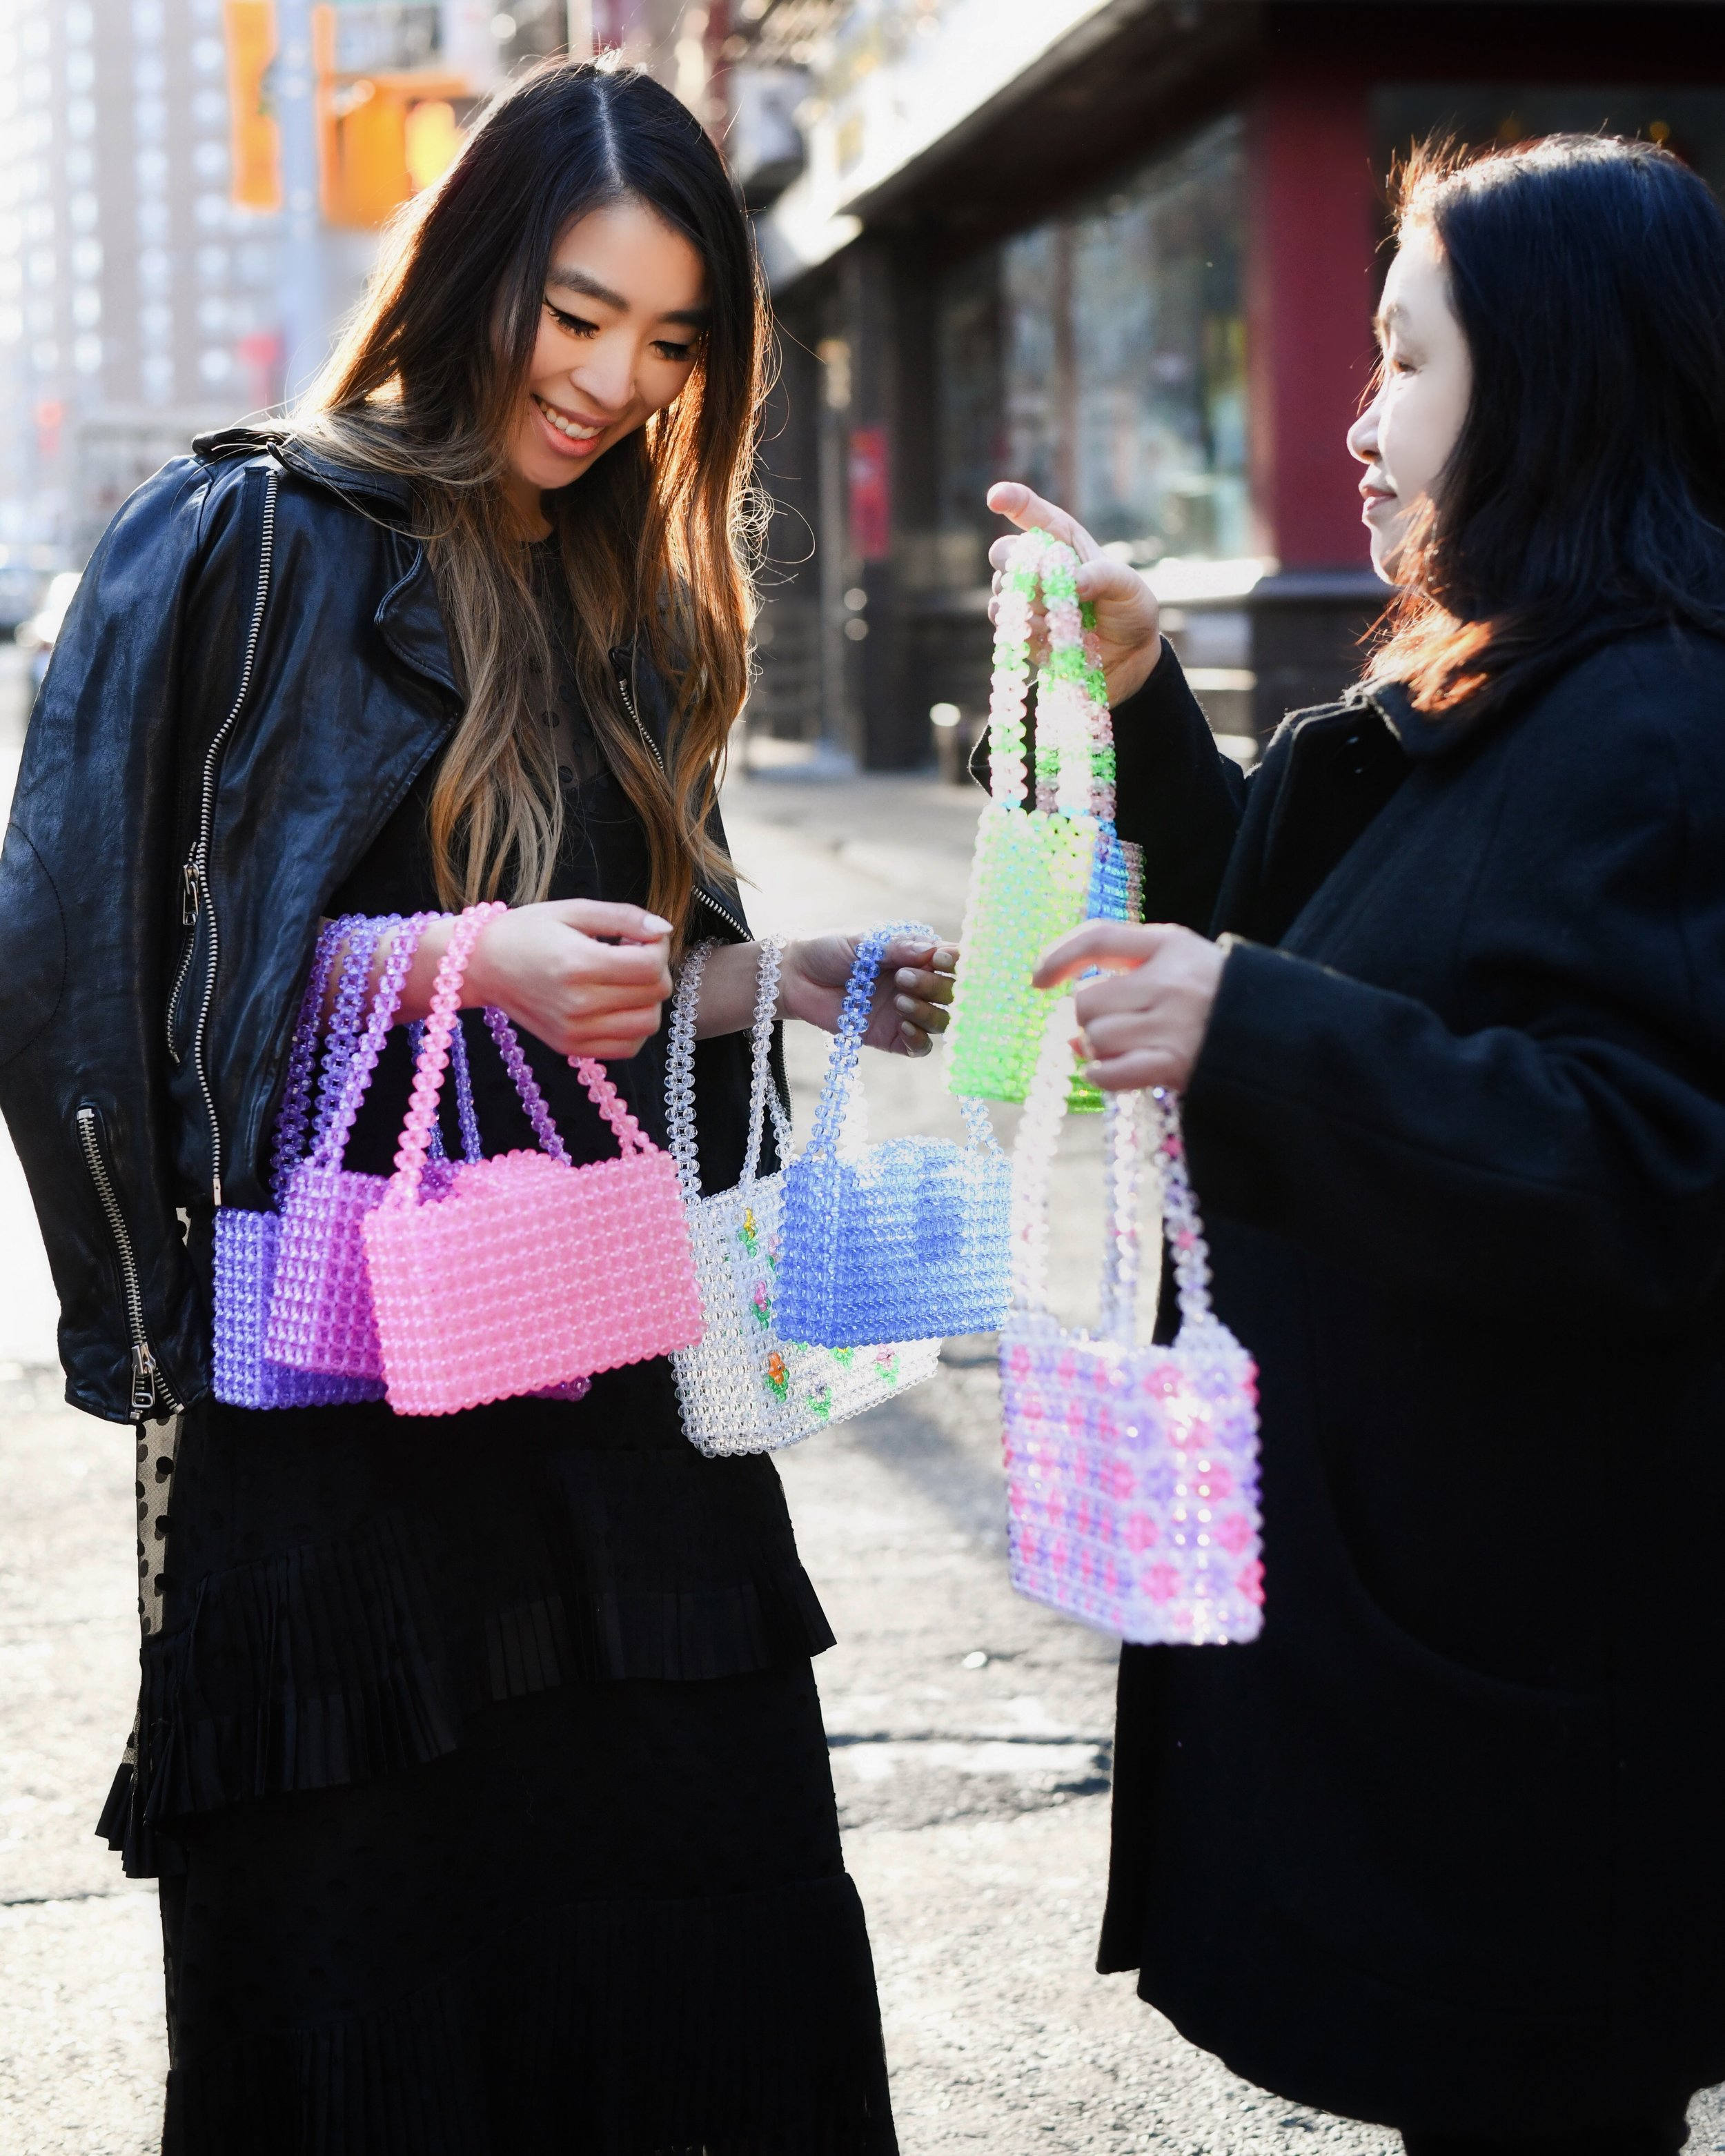 Susanna Chow with Mama Chow, who inspired Susanna to create this brand, handcraft each bag in New York City. Photo by Carly Tumen.